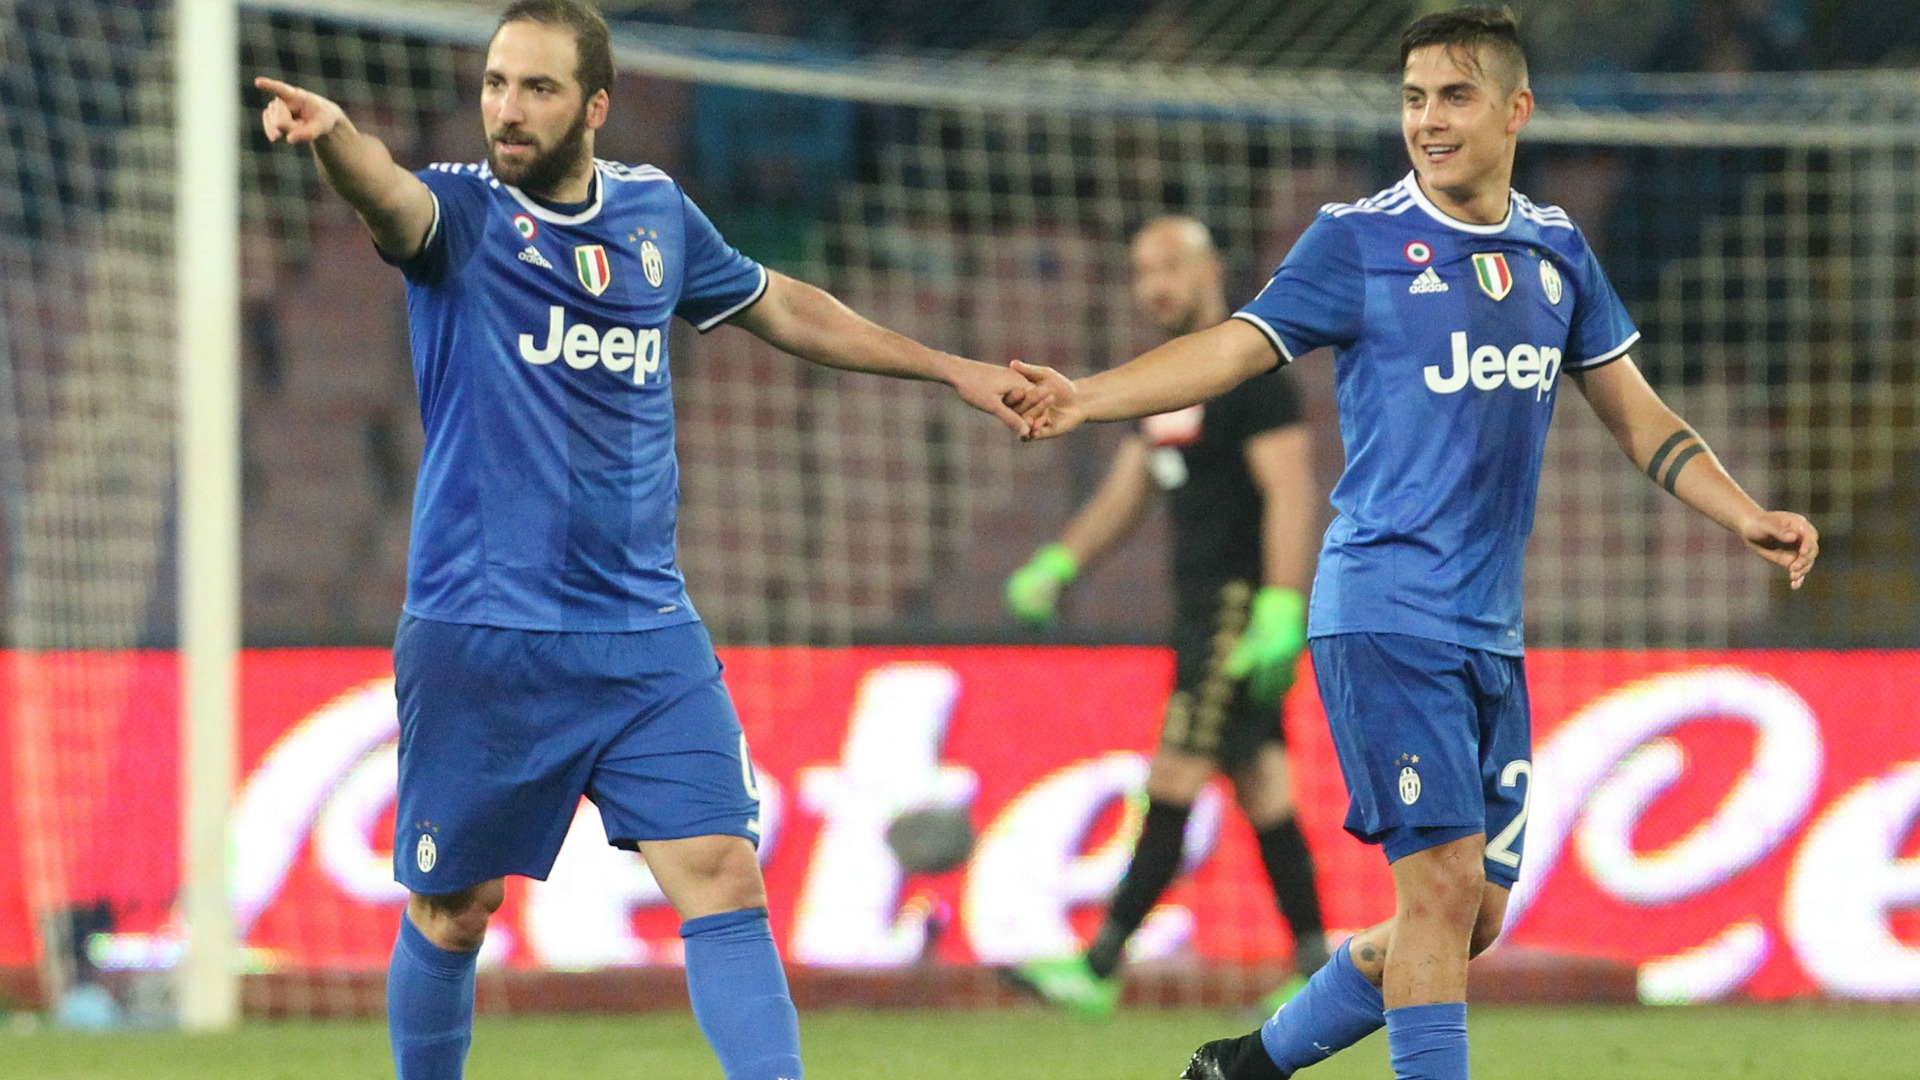 http://images.performgroup.com/di/library/GOAL/95/c6/gonzalo-higuain-paulo-dybala-napoli-juventus_r5w3abmvsrxk184cdp559ov16.jpg